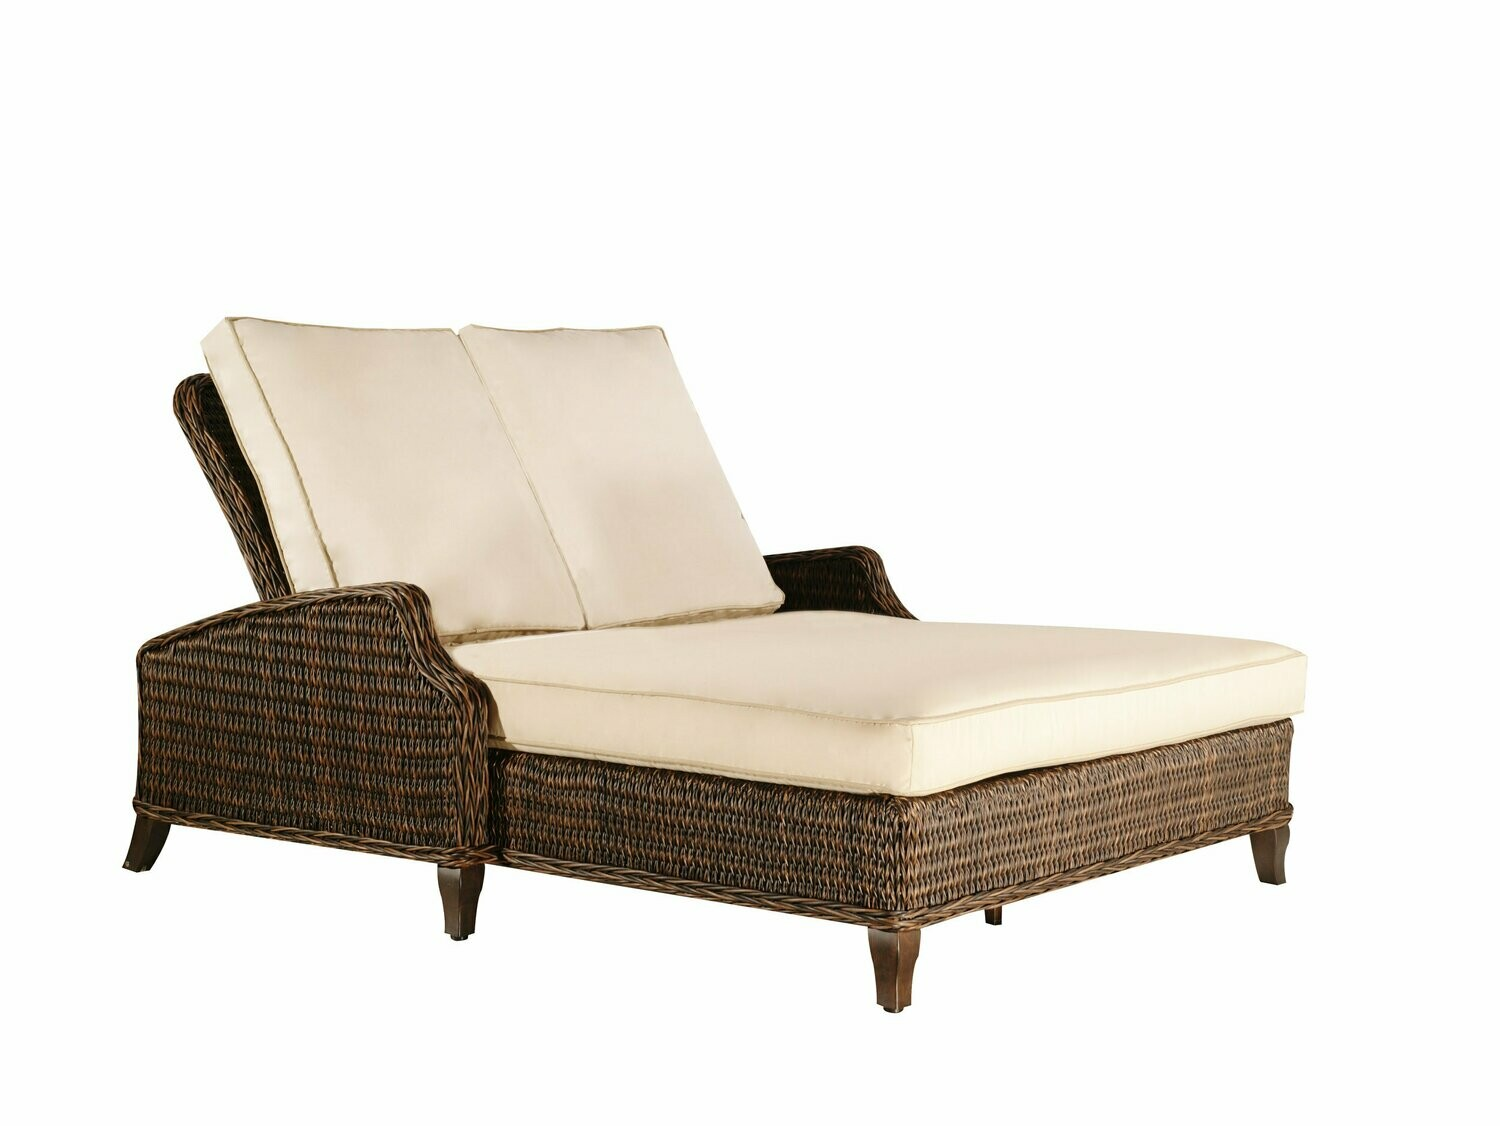 Monticello Double Adjustable Chaise